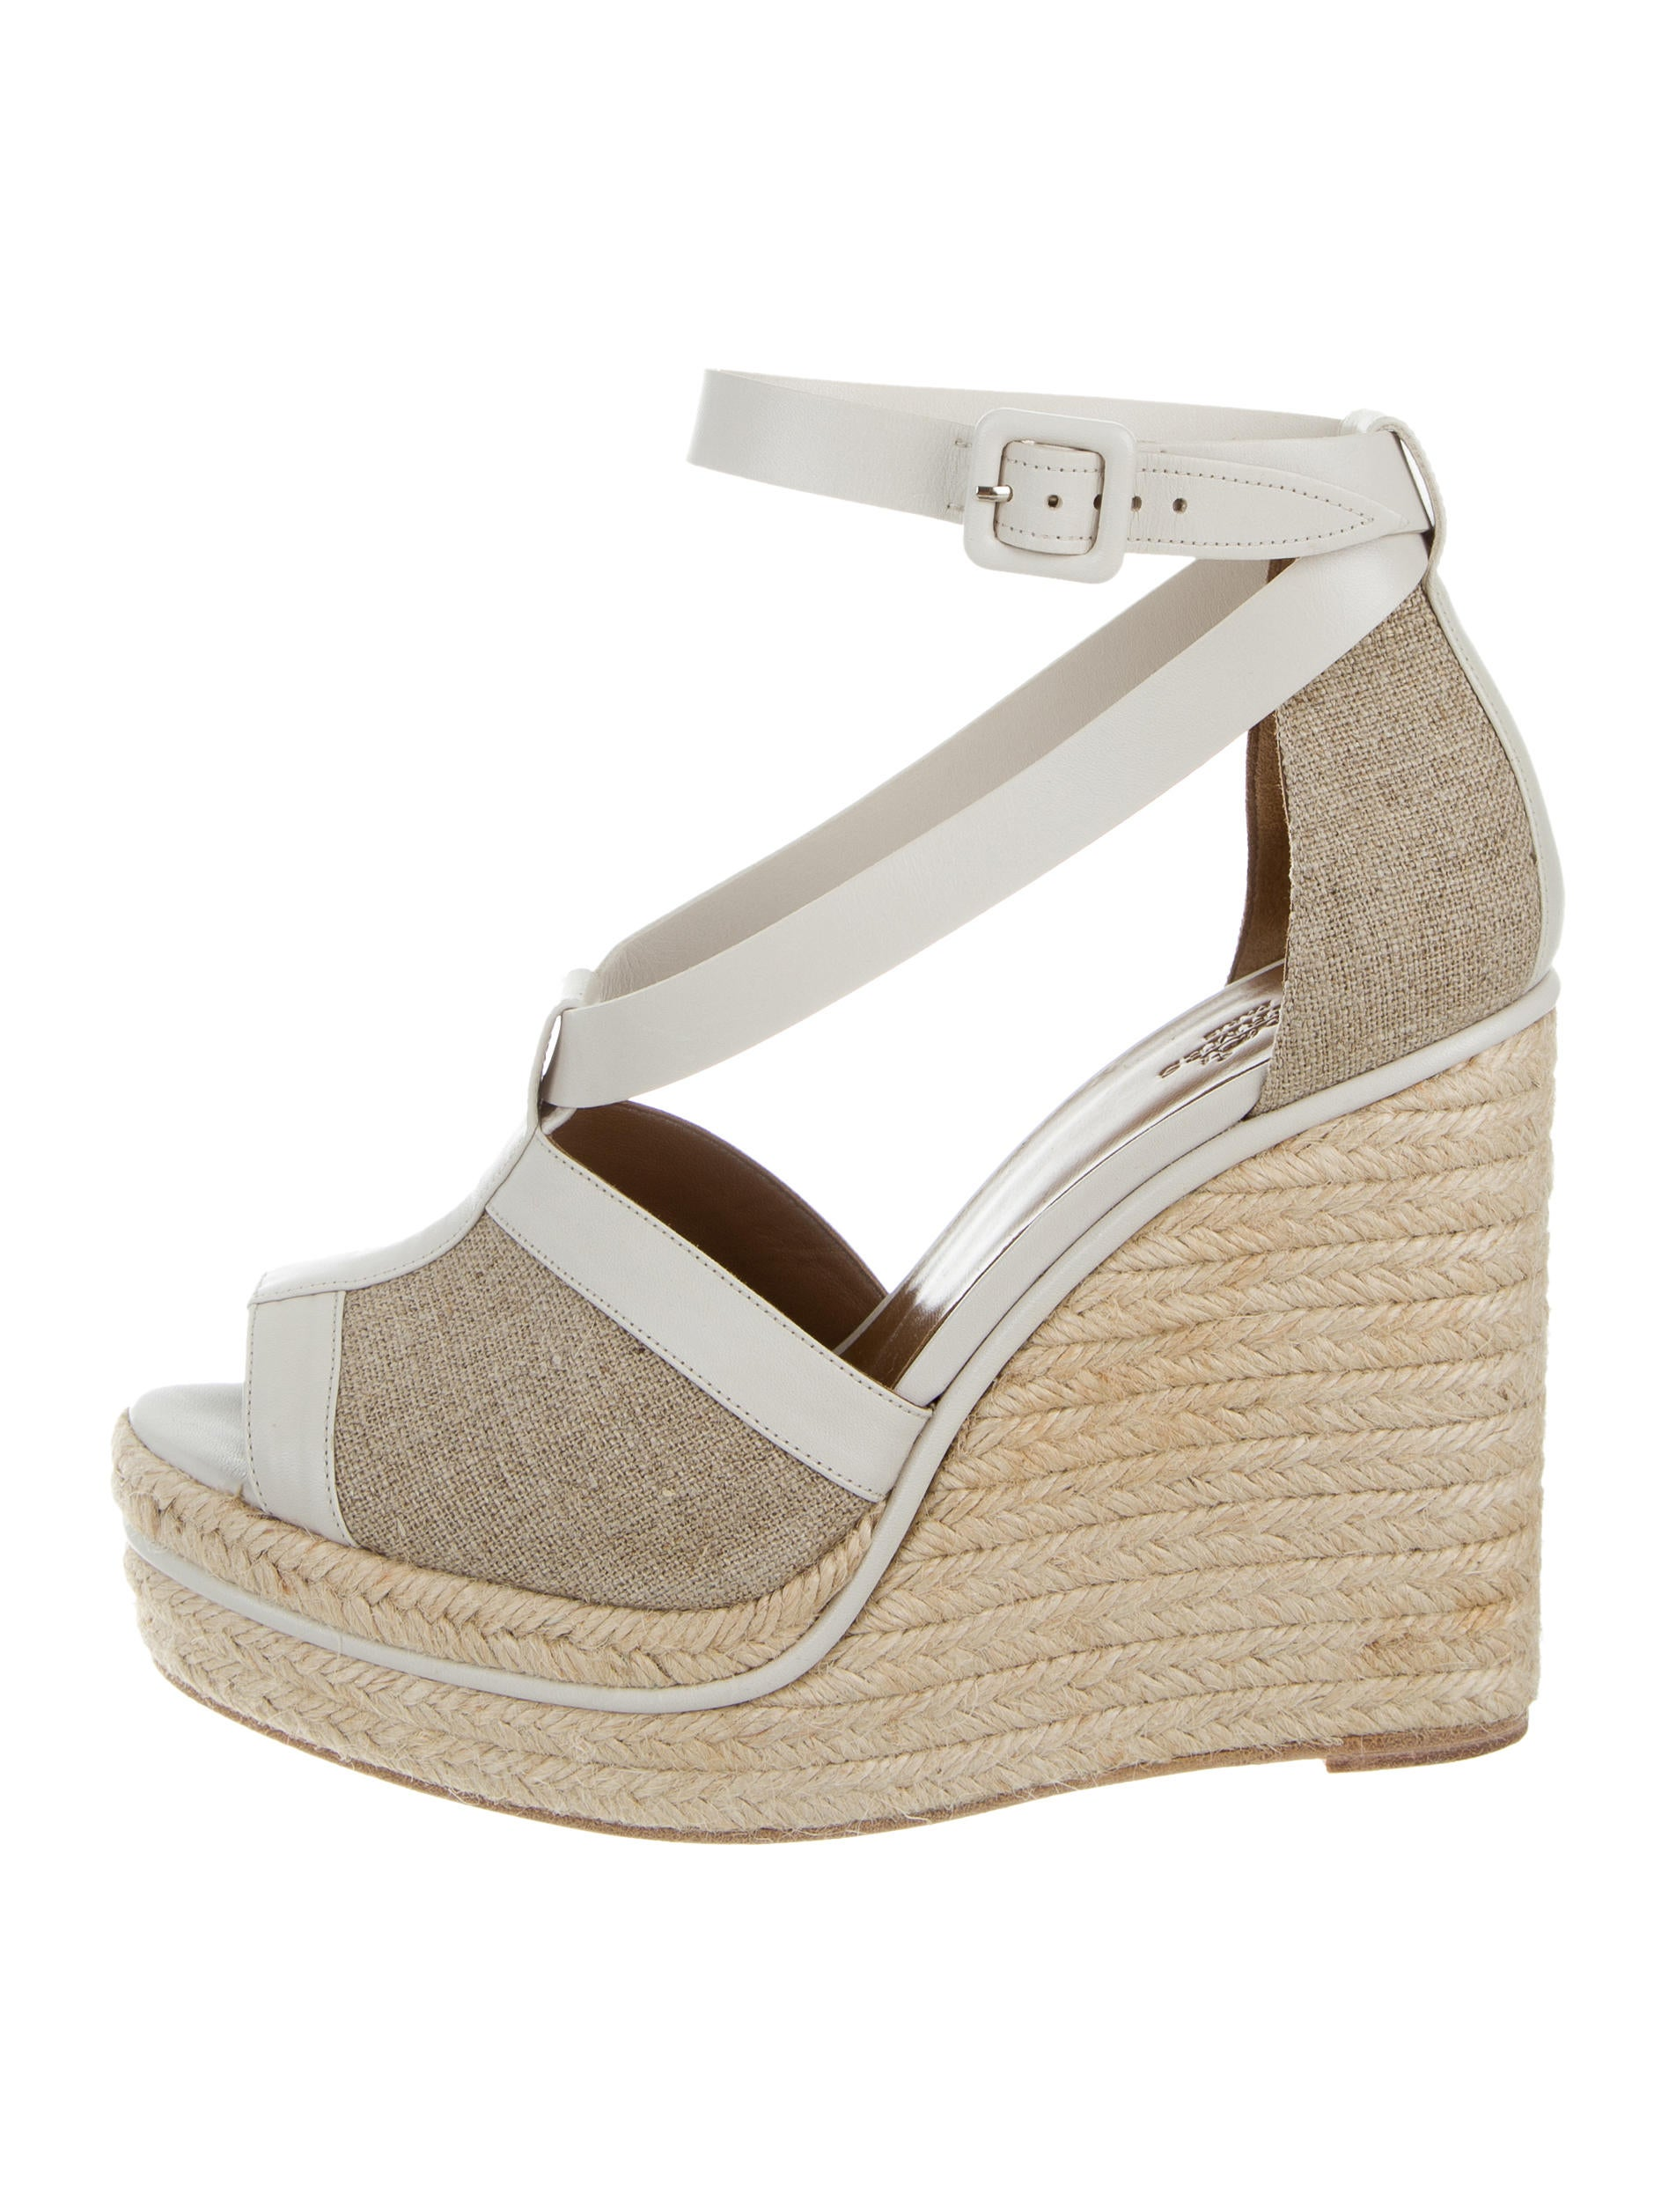 herm 232 s canvas platform wedge sandals shoes her99853